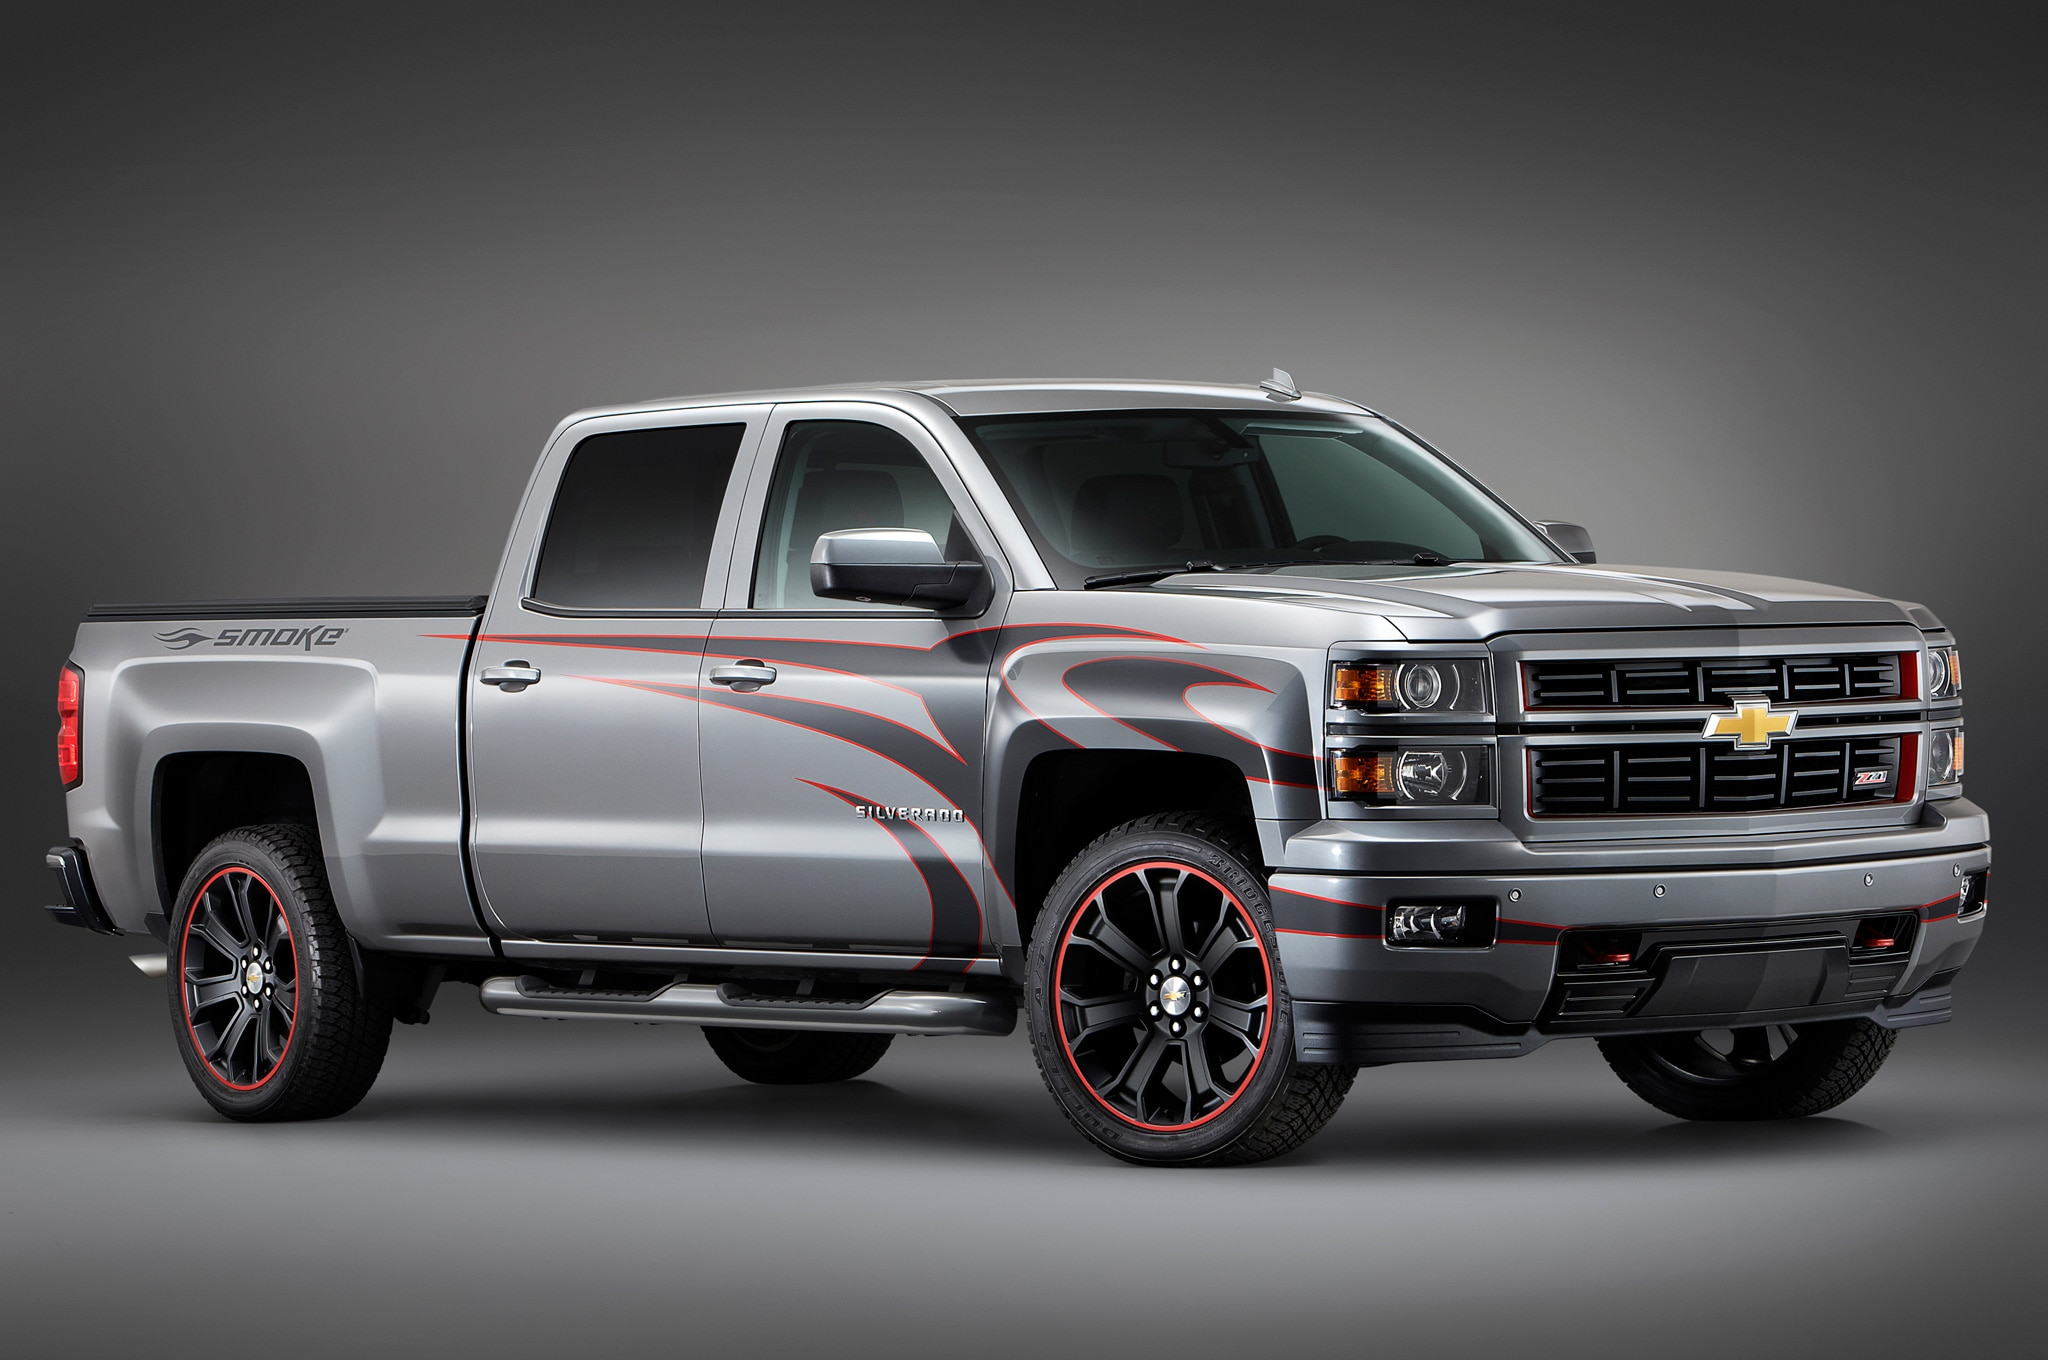 2014 Chevy Tahoe >> SEMA 2013: Chevrolet Rolls Out Customized 2014 Silverado, 2015 Tahoe Trucks